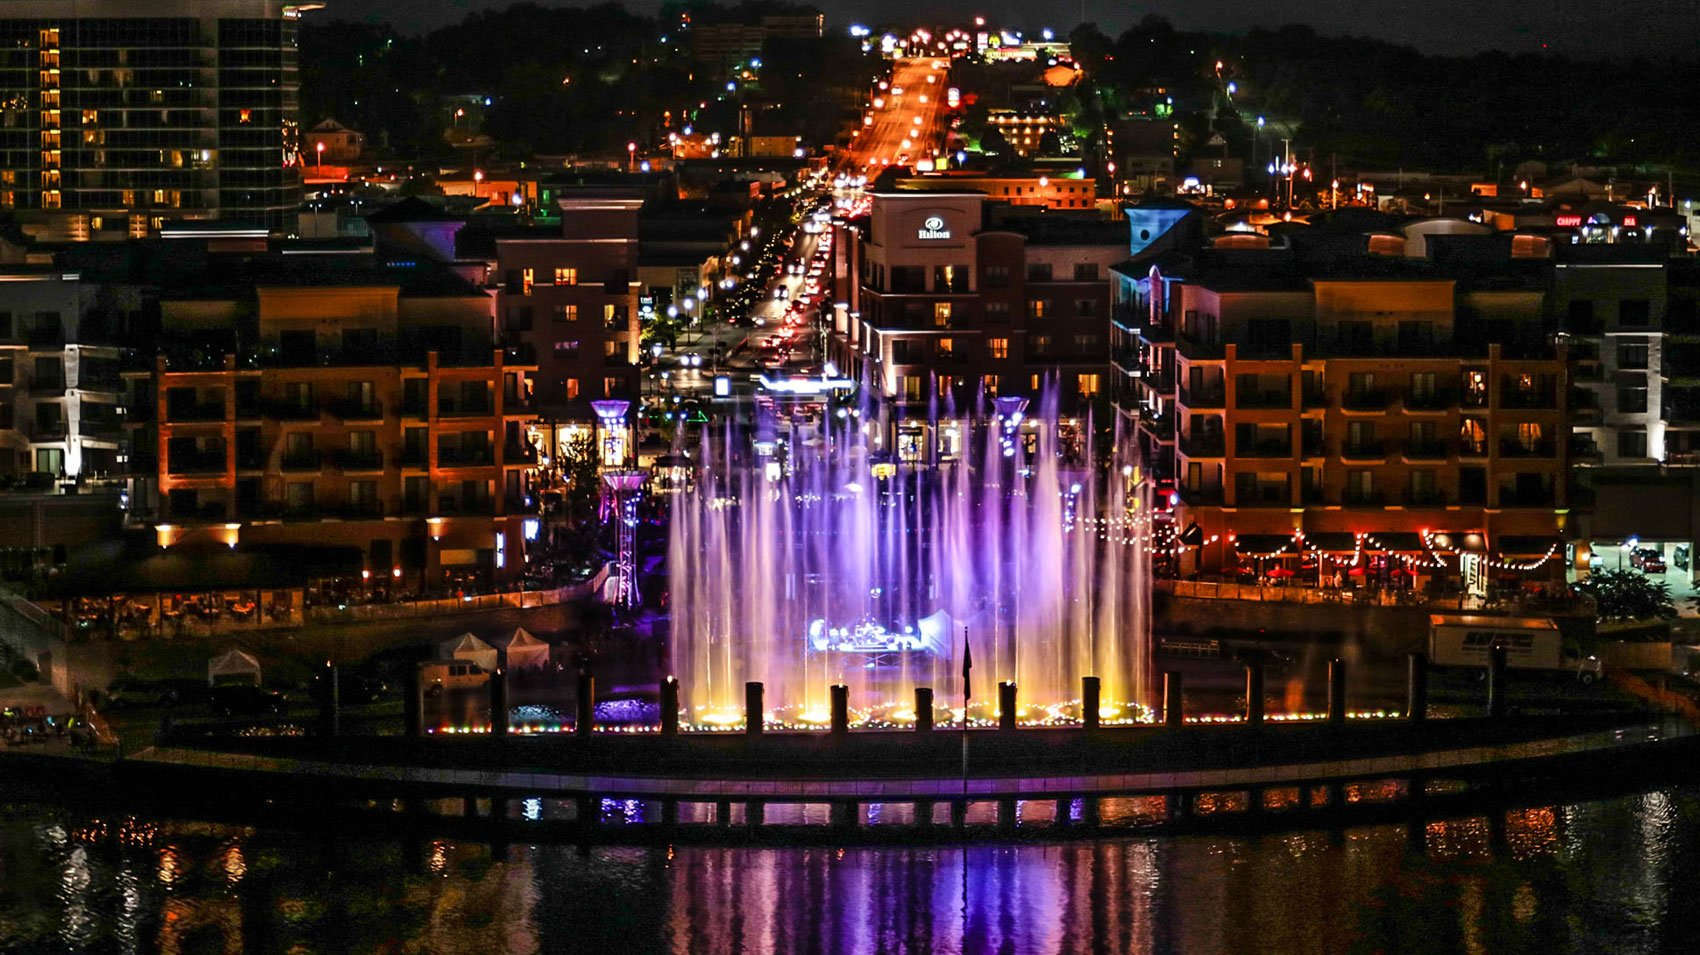 The Branson Landing - Night Fountain